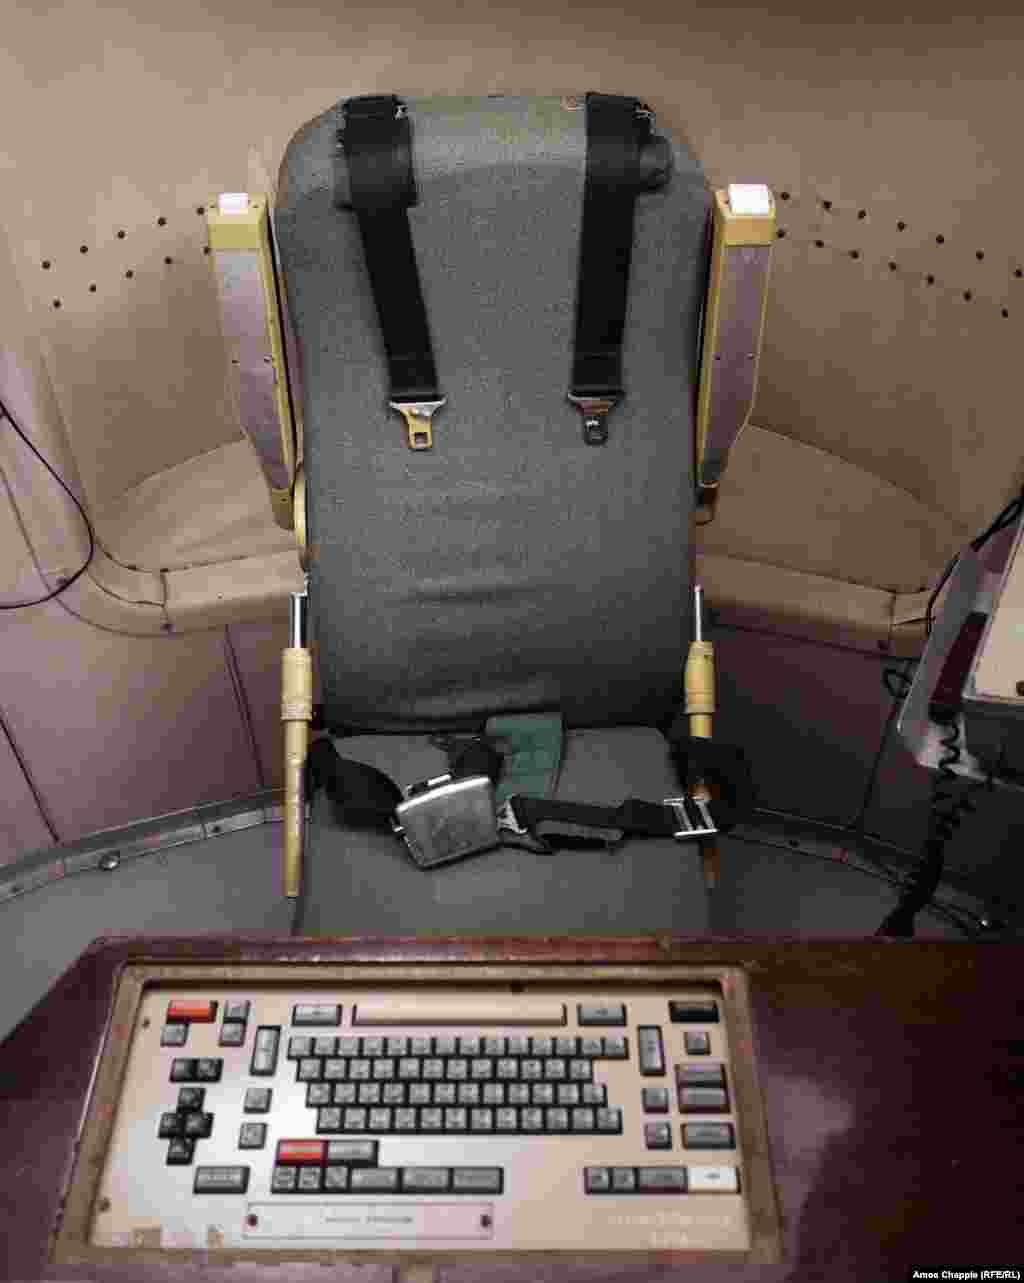 Deep underground, commanders on duty spent six hours in front of their keyboard, strapped into their seats in case an enemy missile struck. The men were not permitted to eat or drink while in this seat.